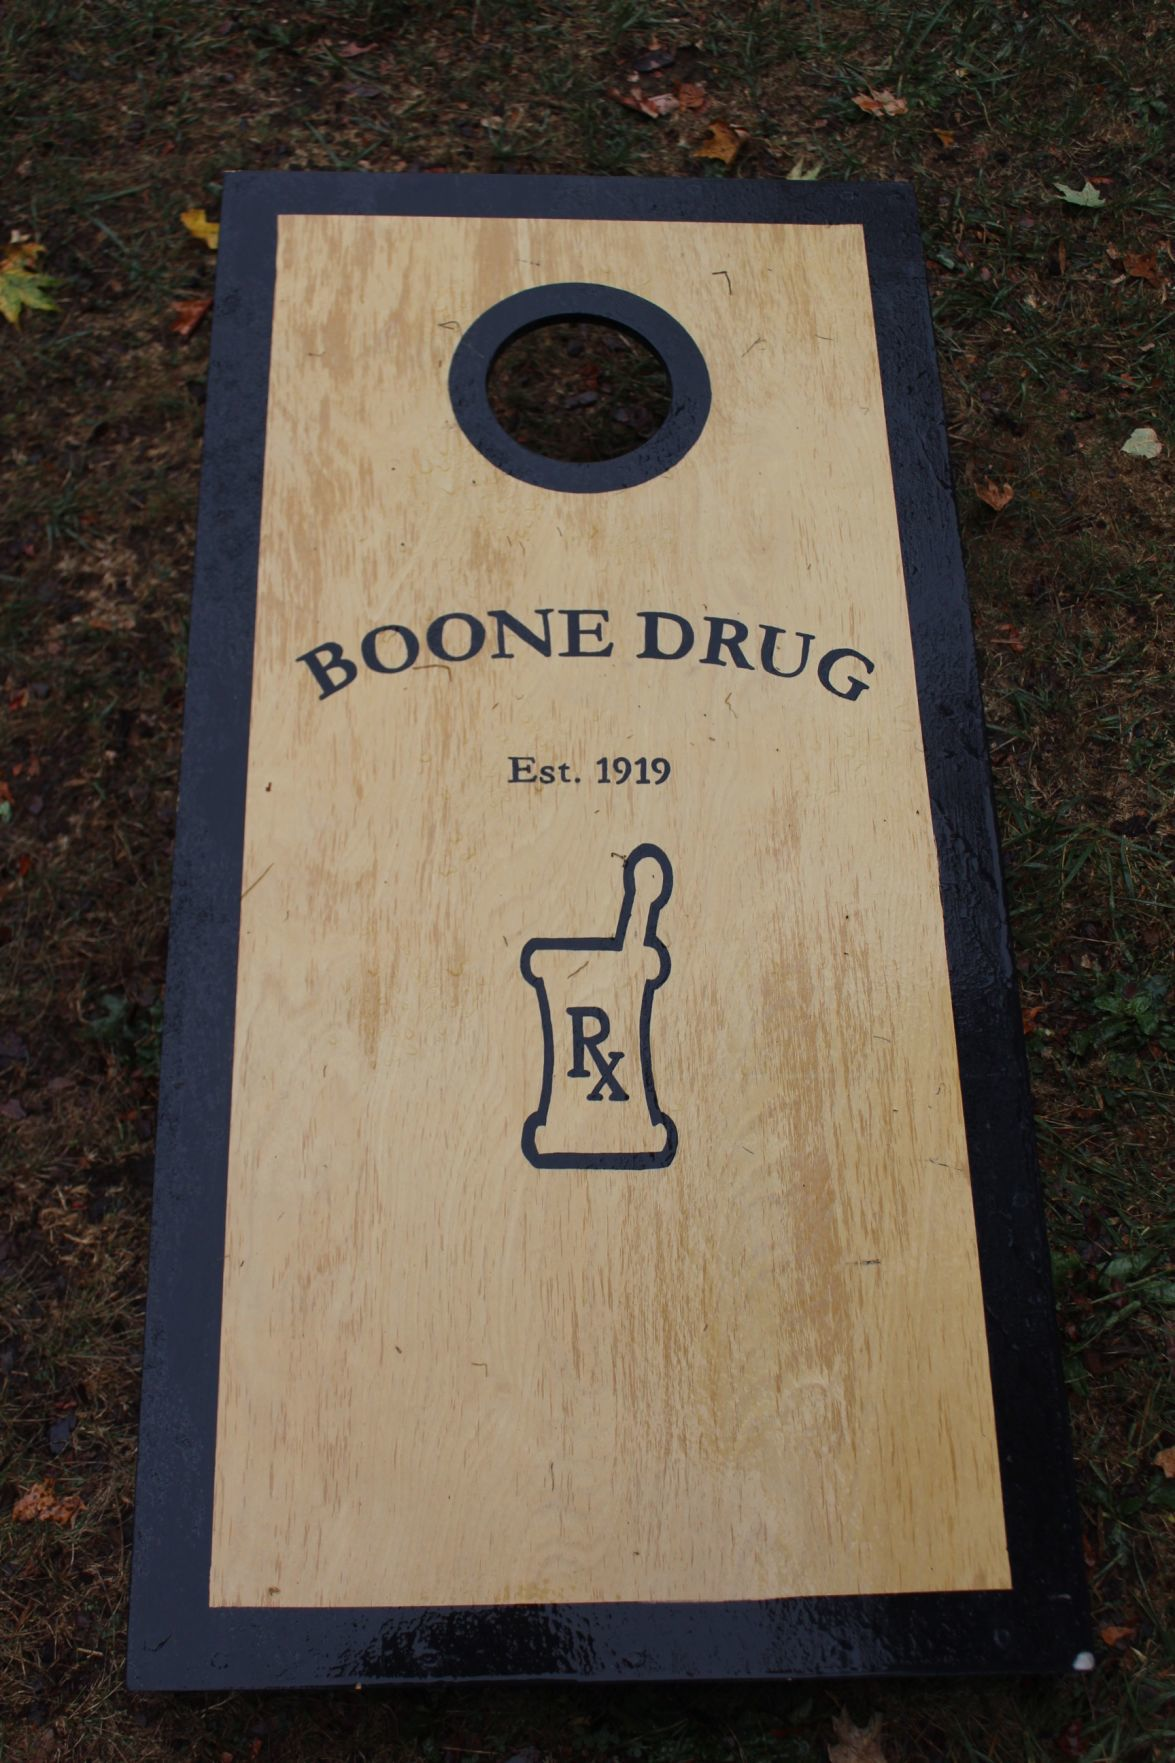 Boone Drug celebration activities